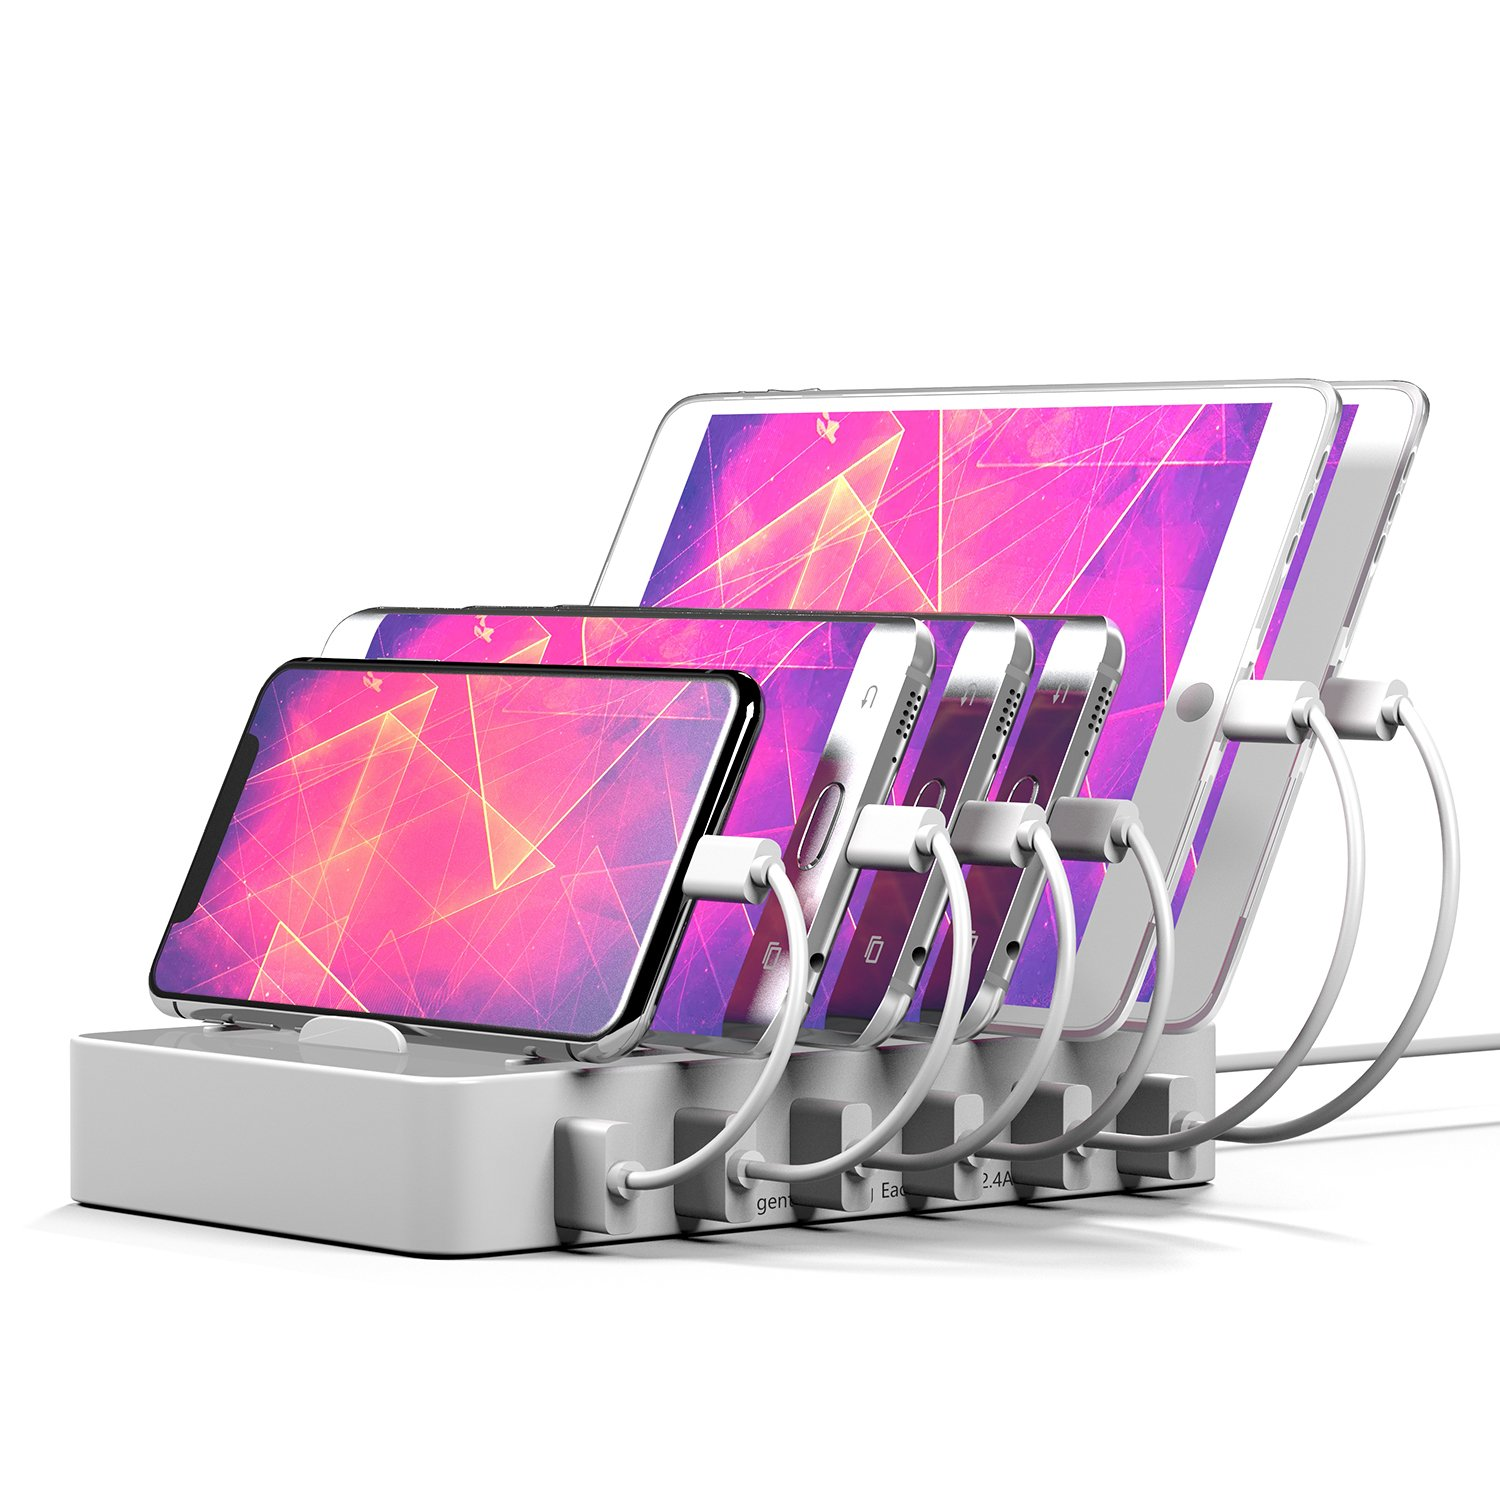 IMLEZON Multiple Charging Station 6 Port Multiport USB Charger Station Multiple Devices (White)